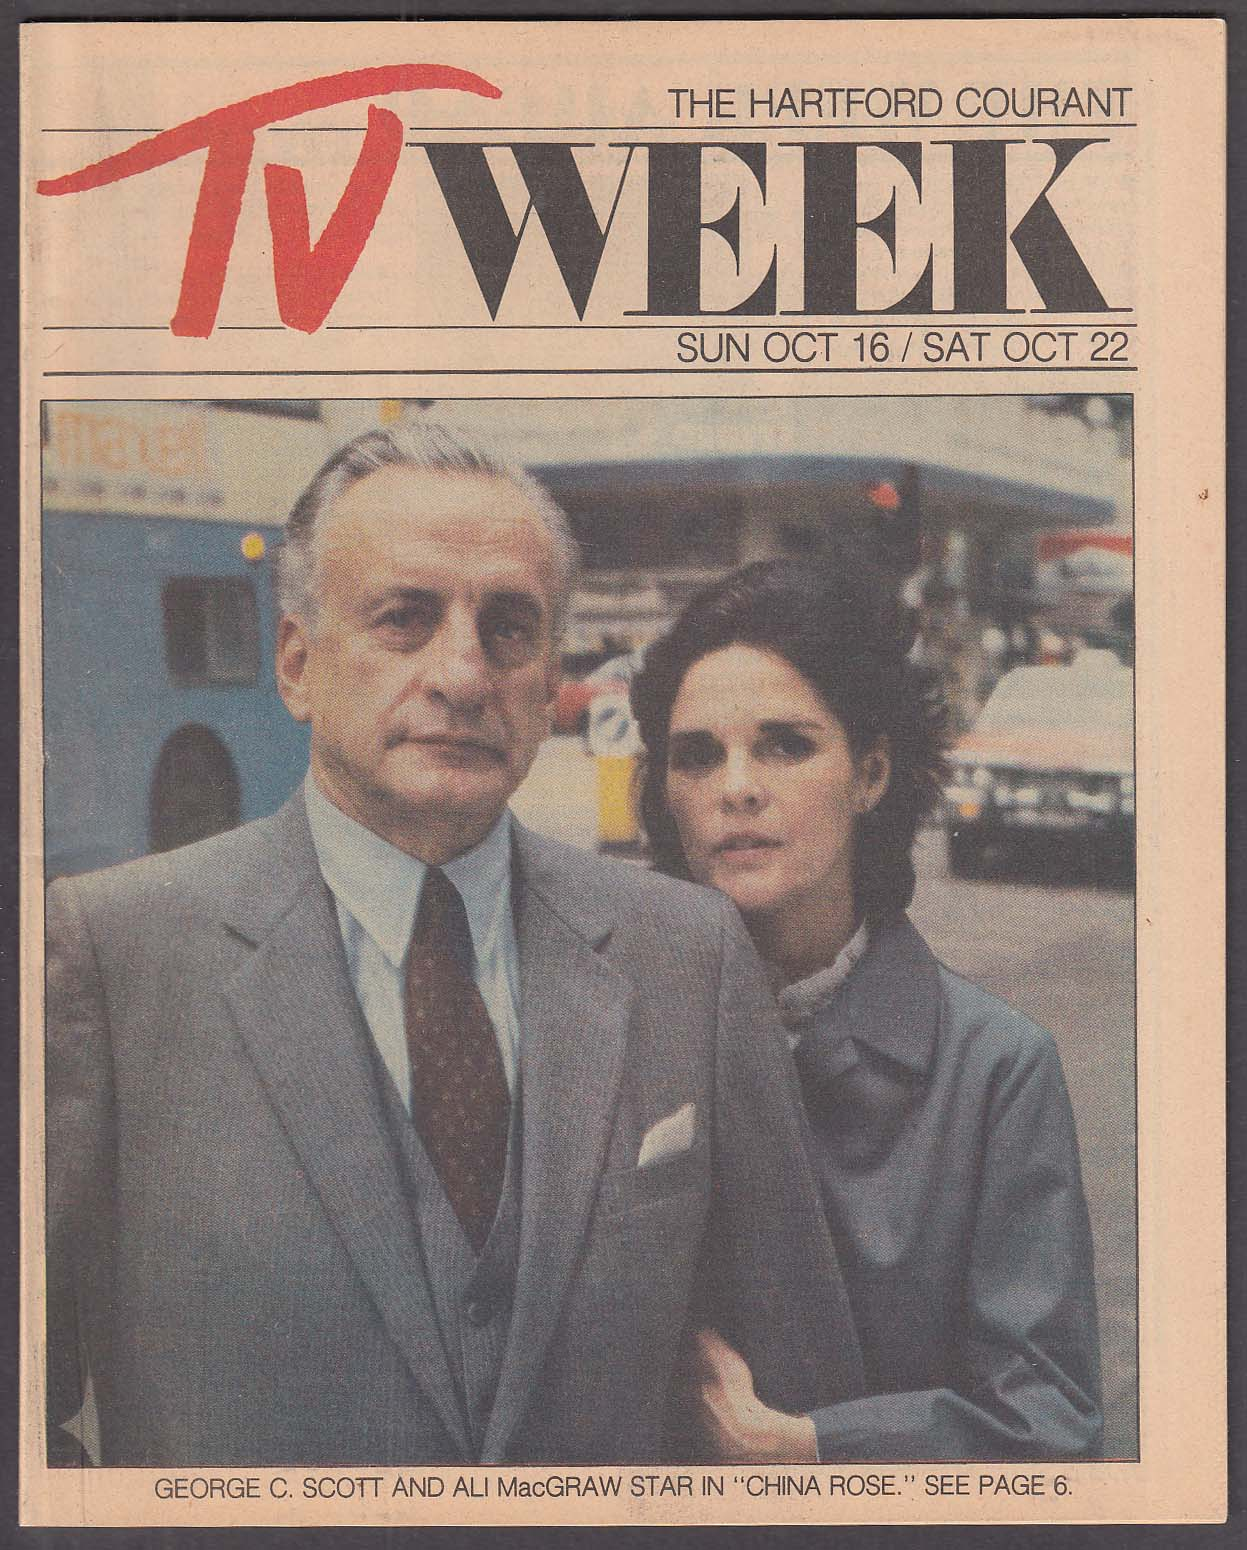 Image for TV WEEK George C Scott Ali MacGraw Hartford Courant 10/16 1983